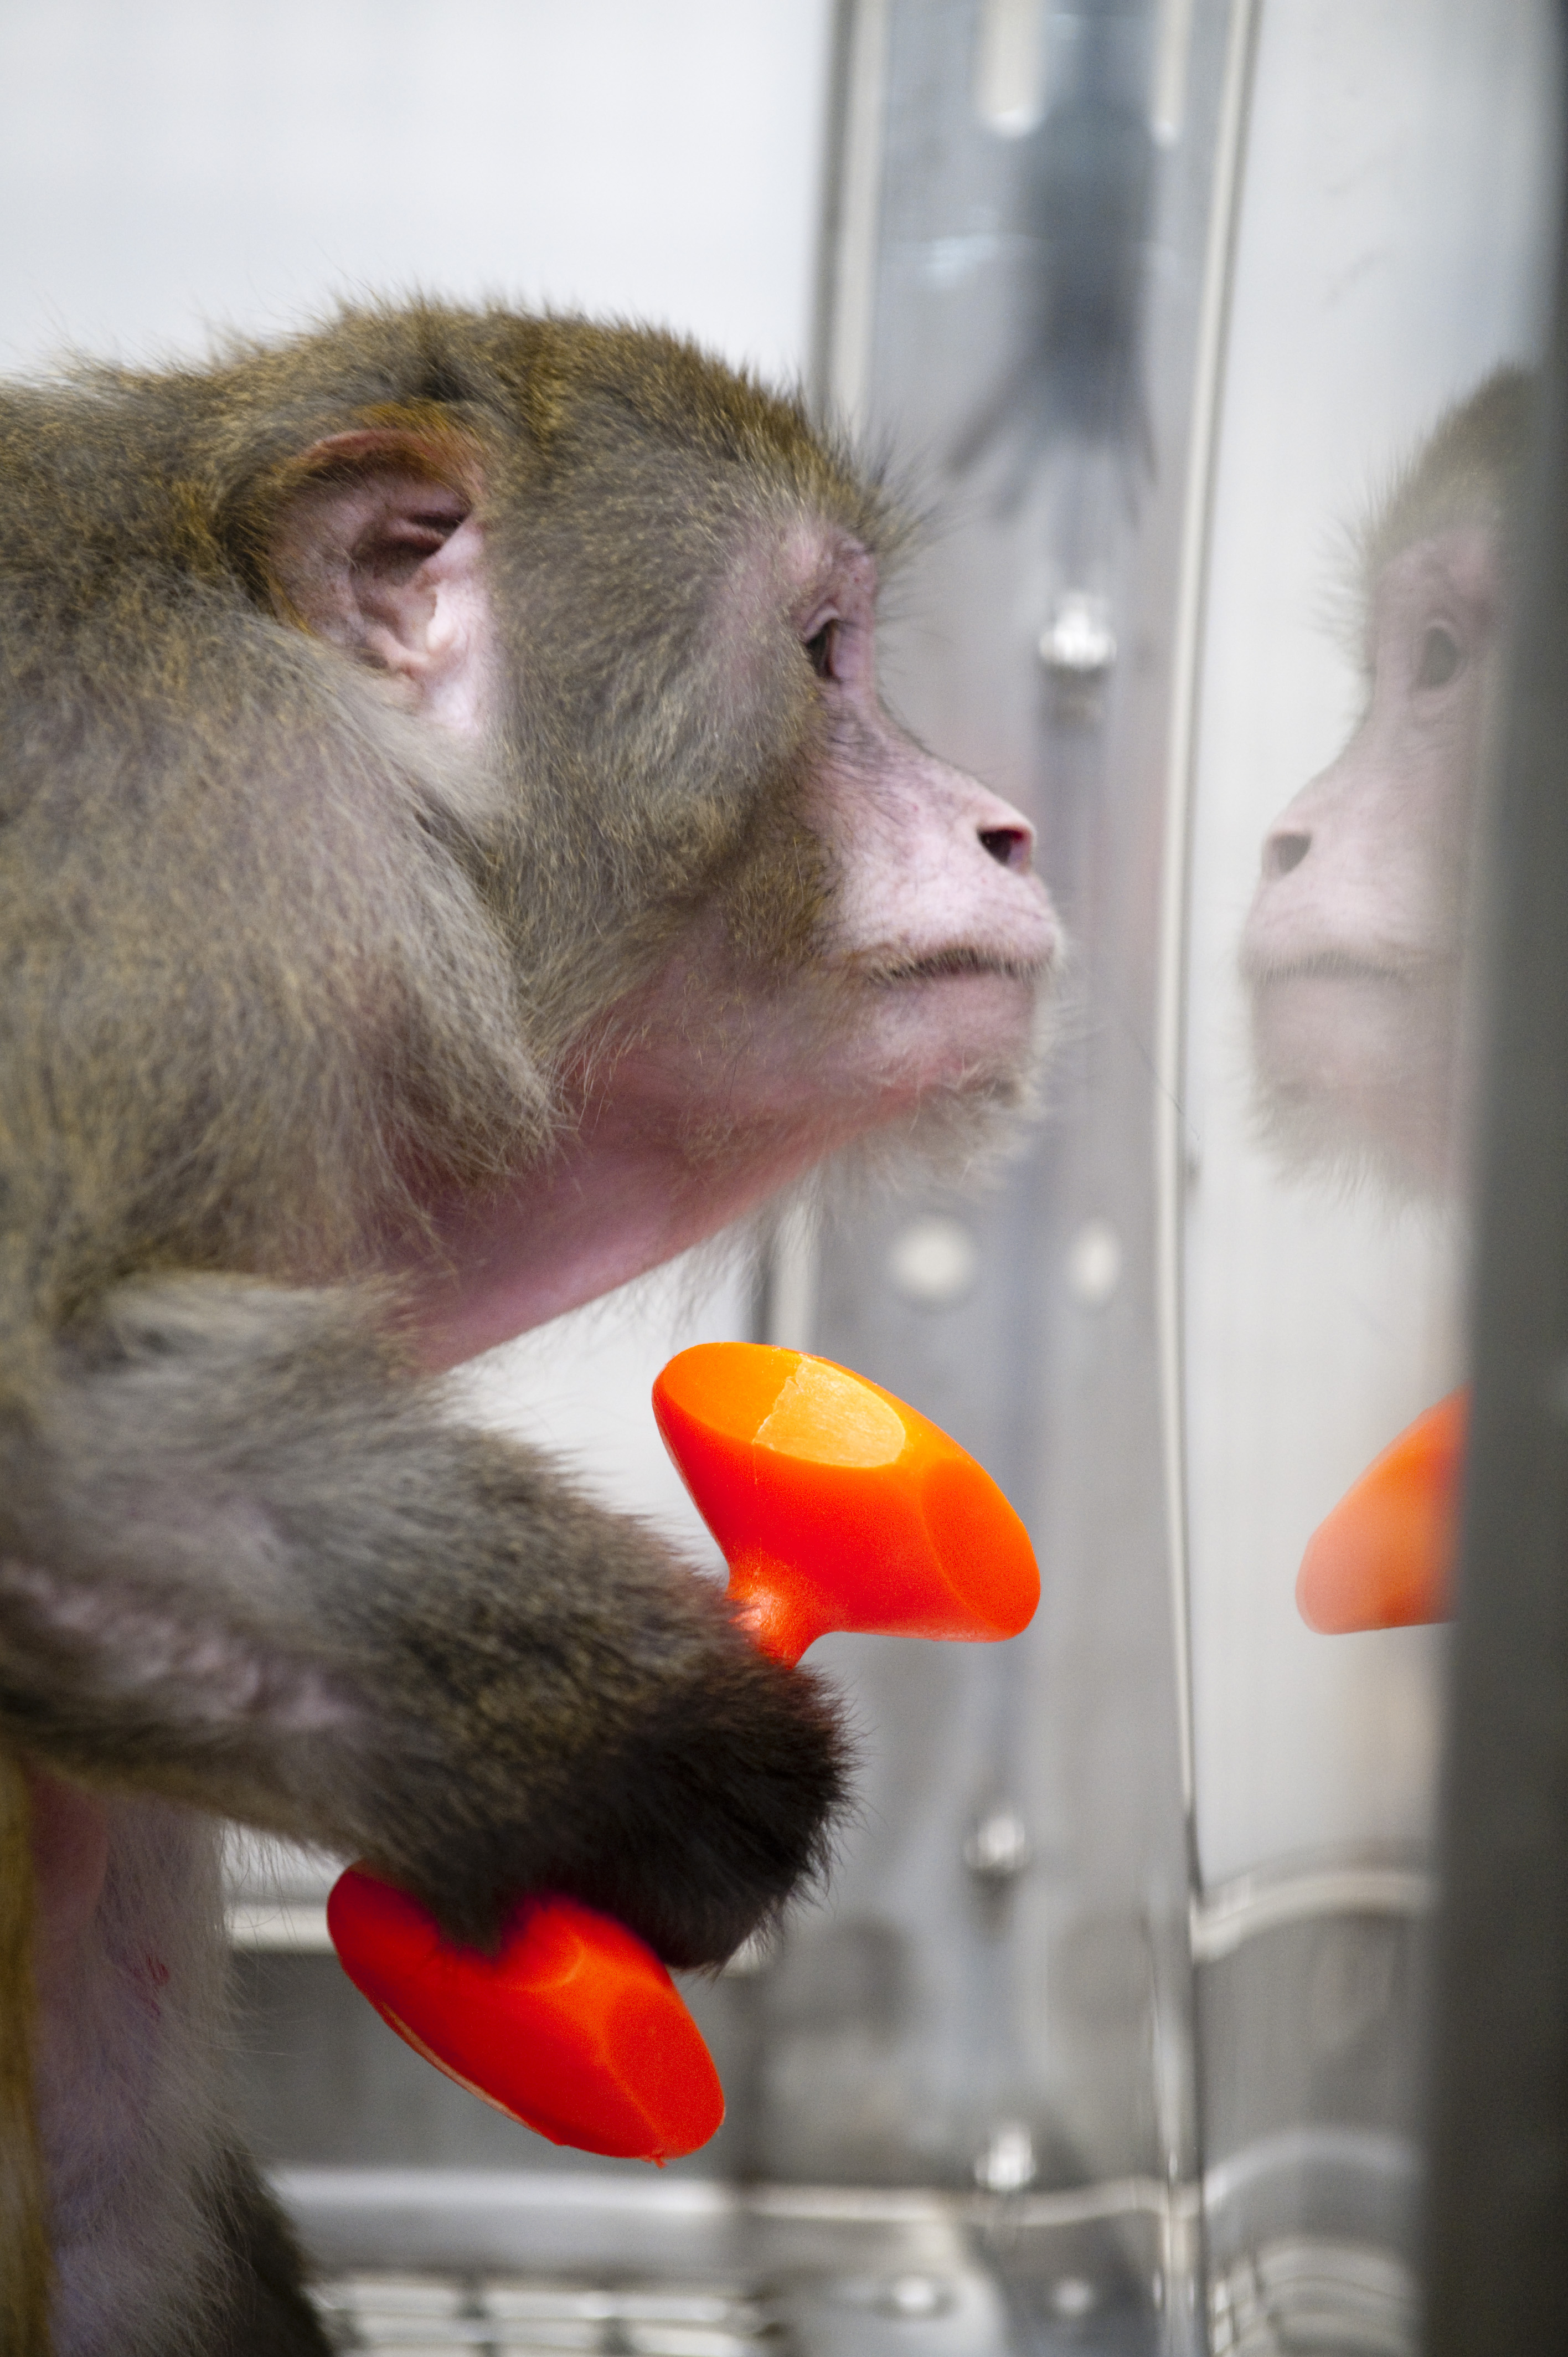 A Starring Role For Nonhuman Primates In The Stem Cell Story Lab Grown Blood Successfully Experimented On Human Photo Monkey Looking At Its Reflection Glass